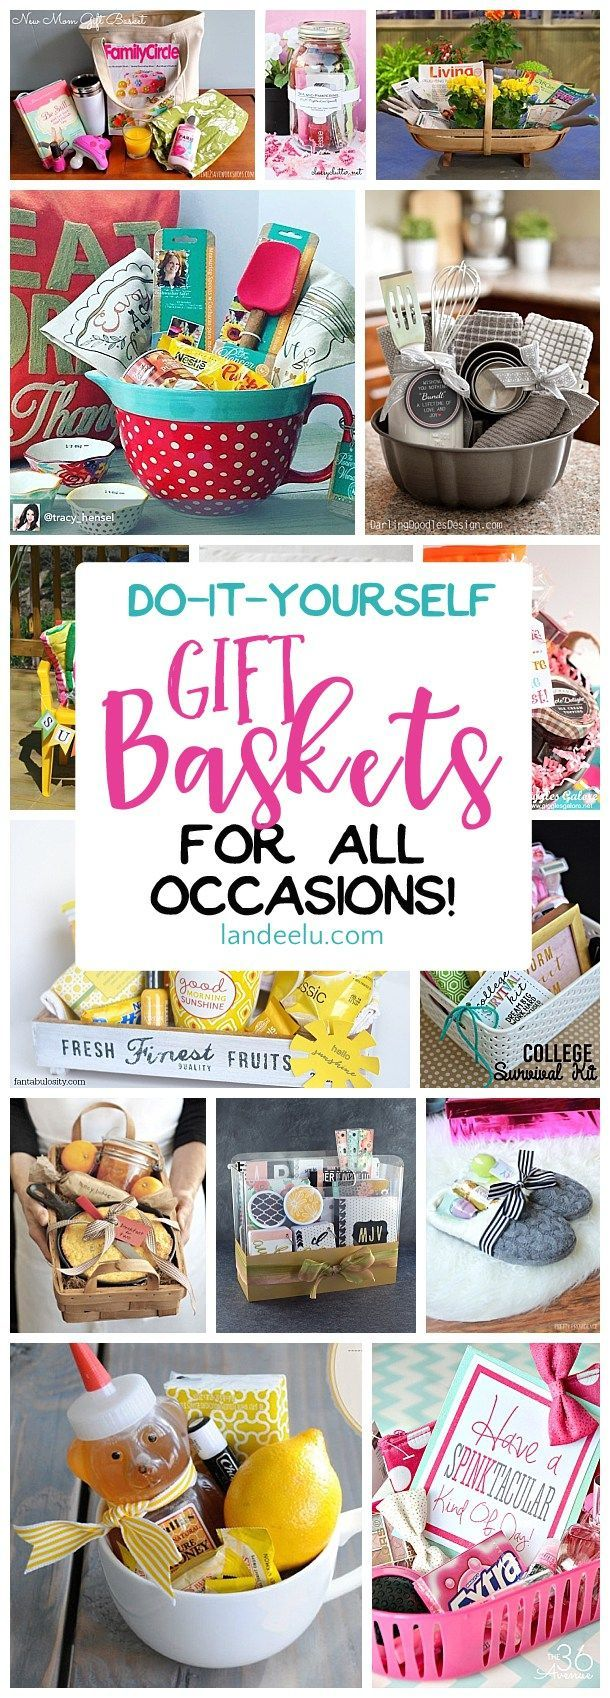 Put together a gift basket for any occasion and make someone's day! Easy do it y...